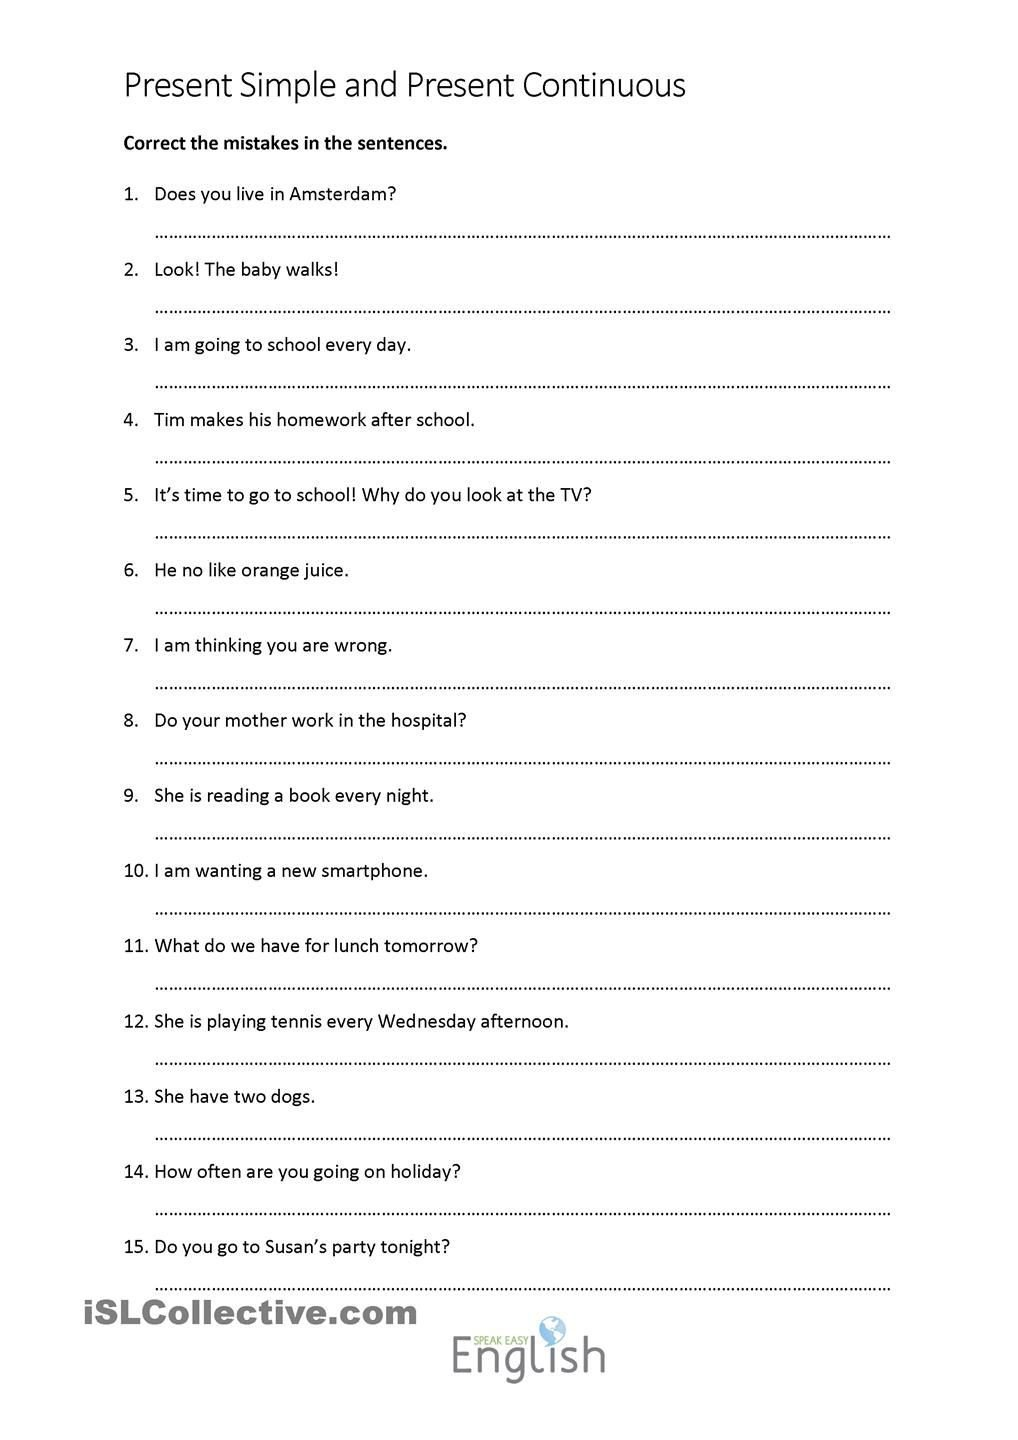 Grammatical Error Worksheets Present Simple Continuous Error Correction with Answers